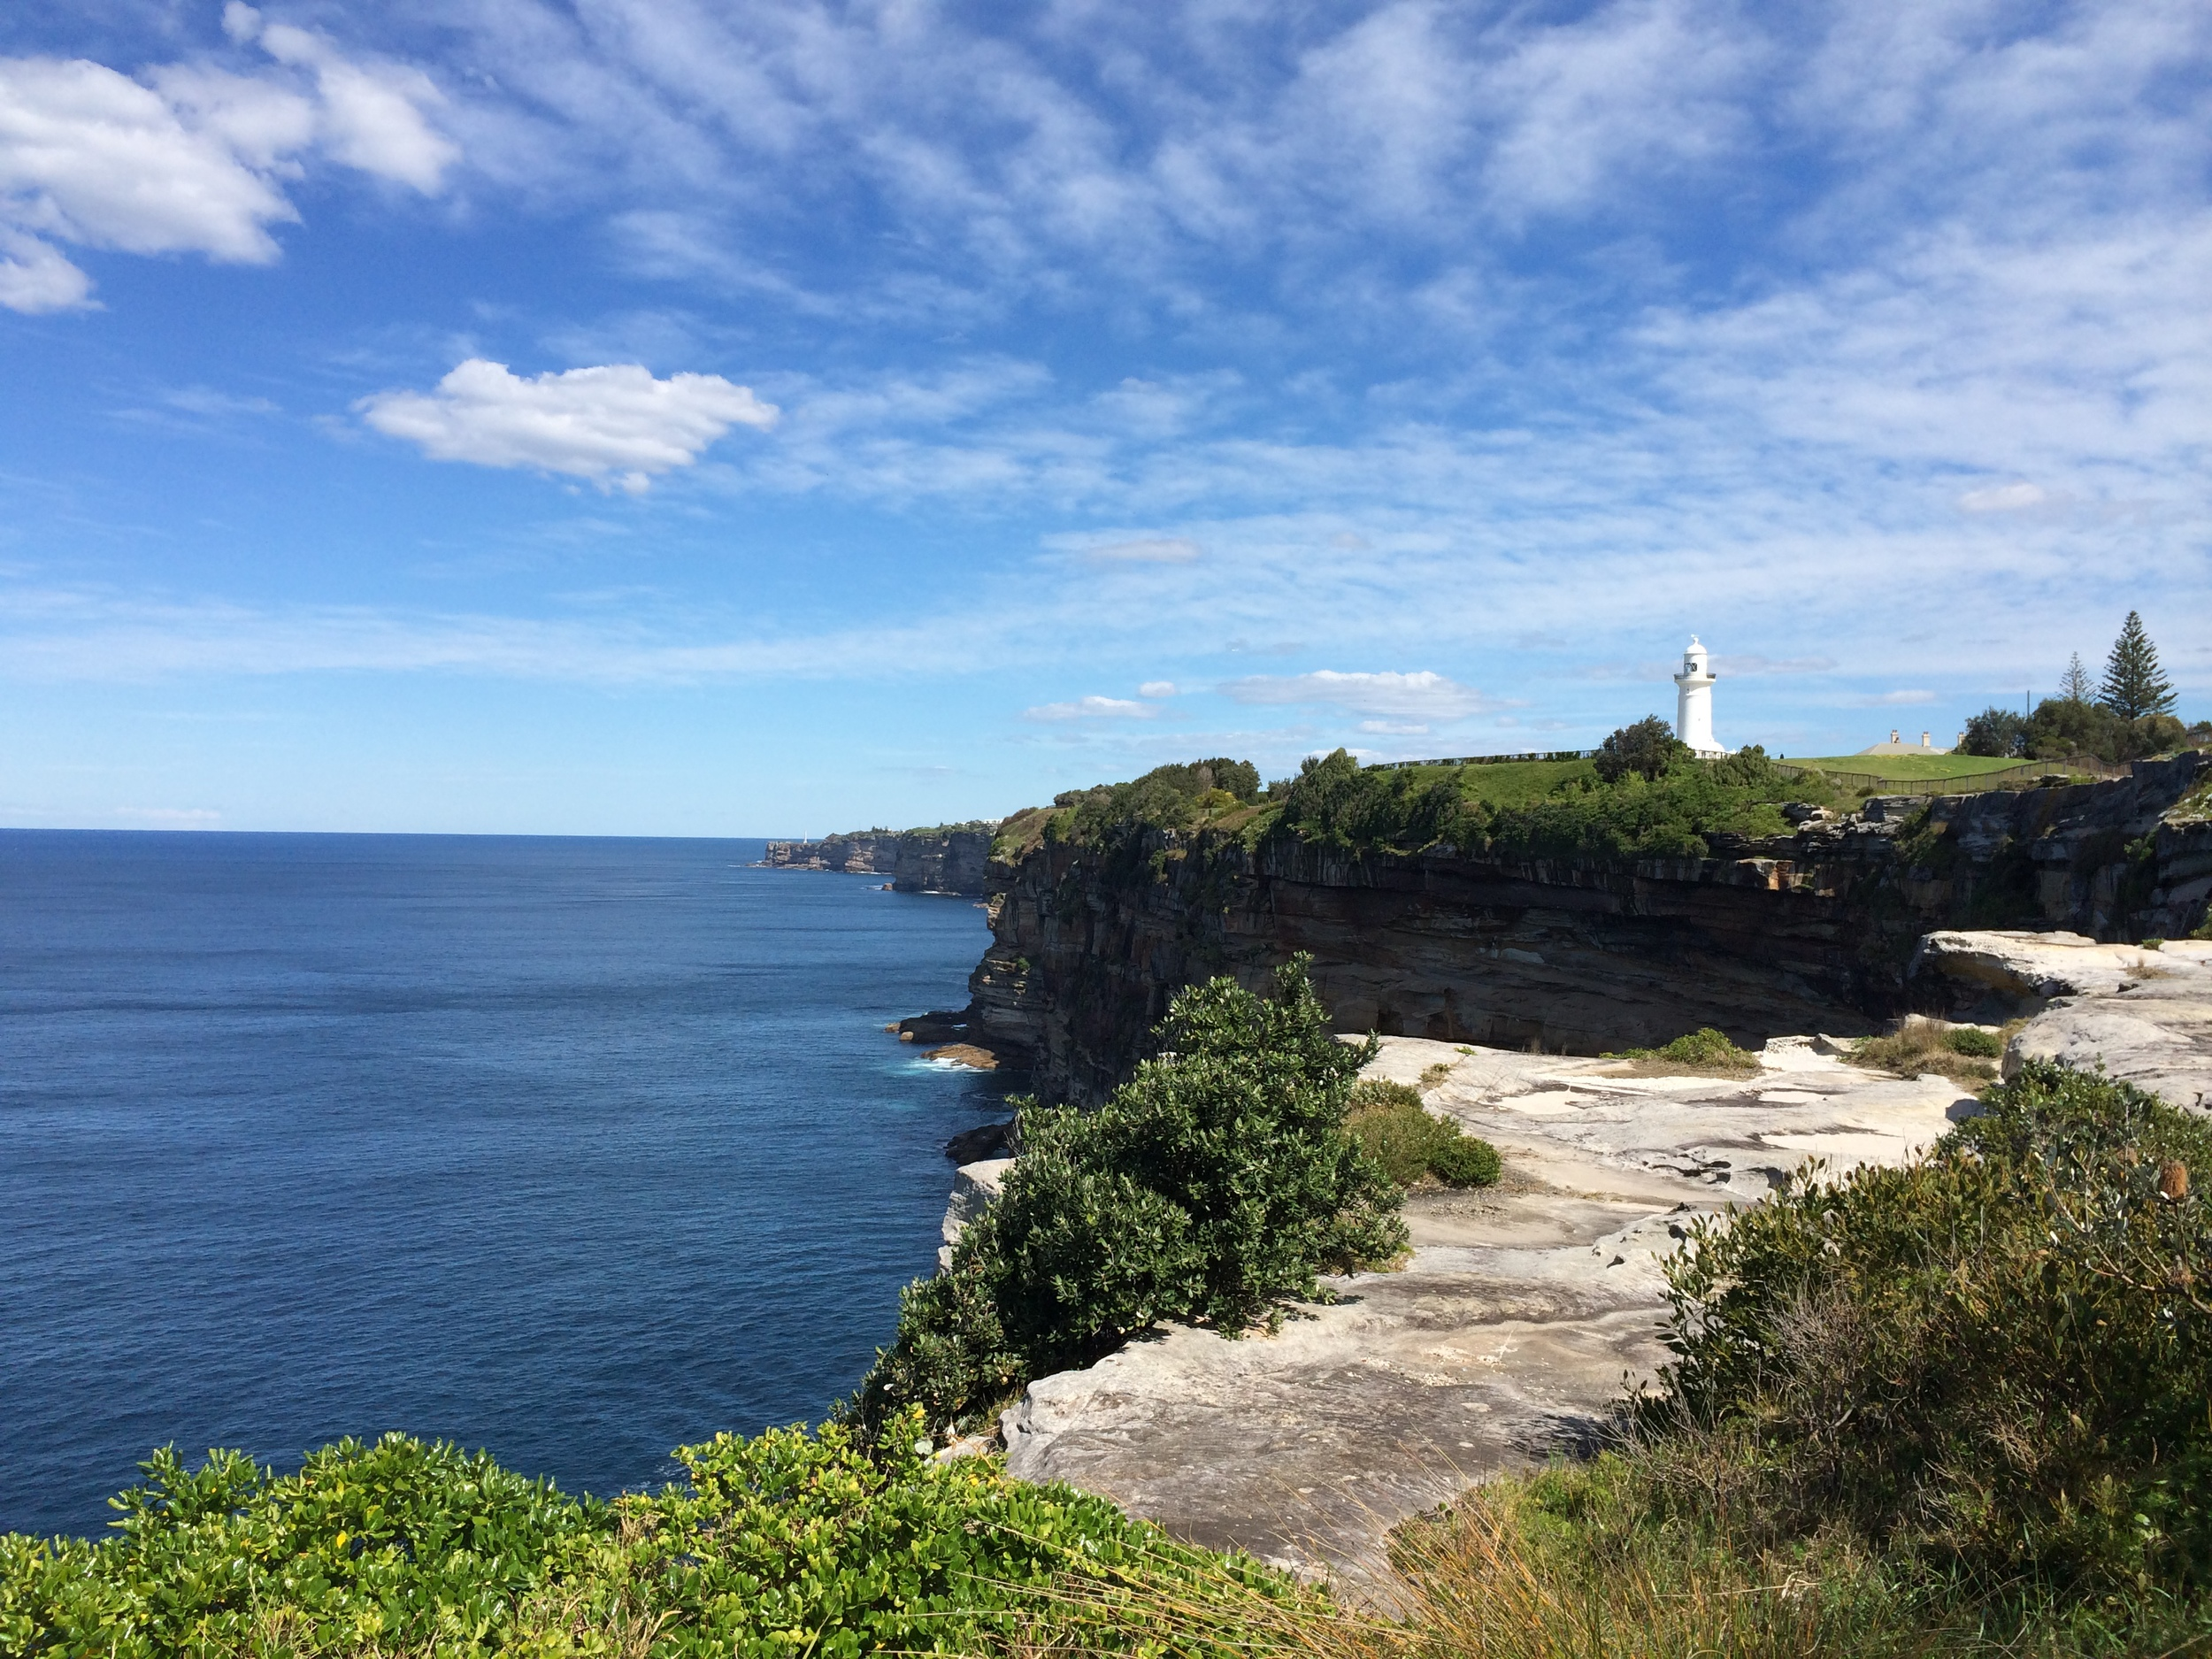 Macquarie Lighthouse, a setting in RG